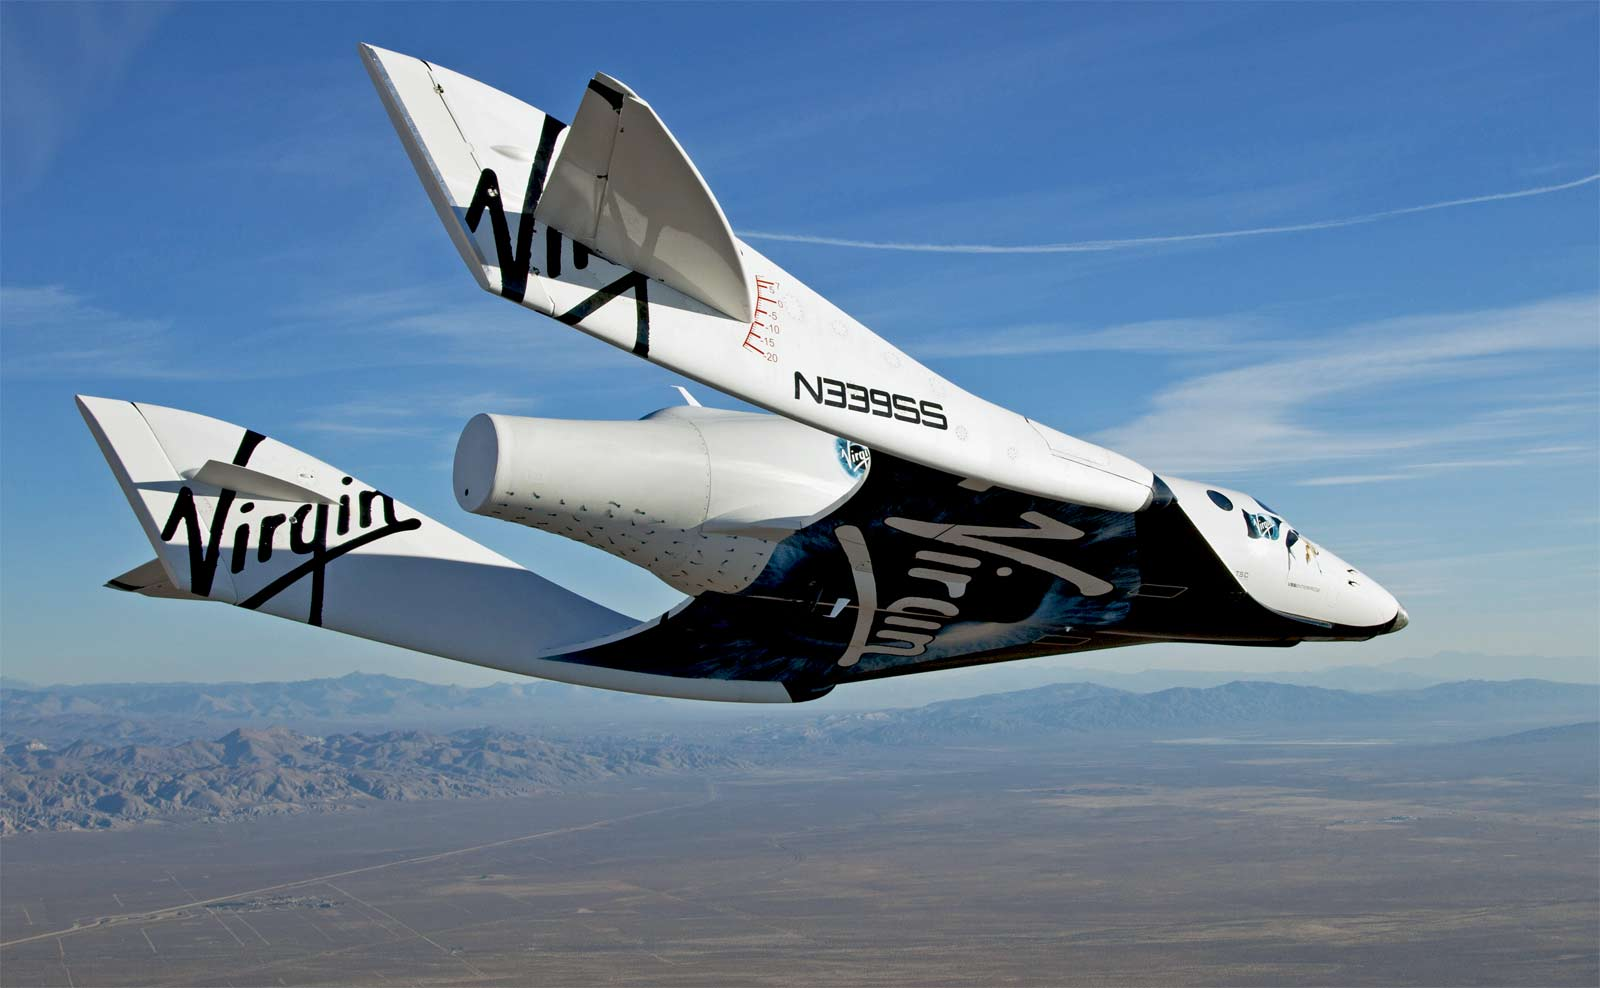 Virgin_Galactic_VSS_Enterprise_Free_Flight_3